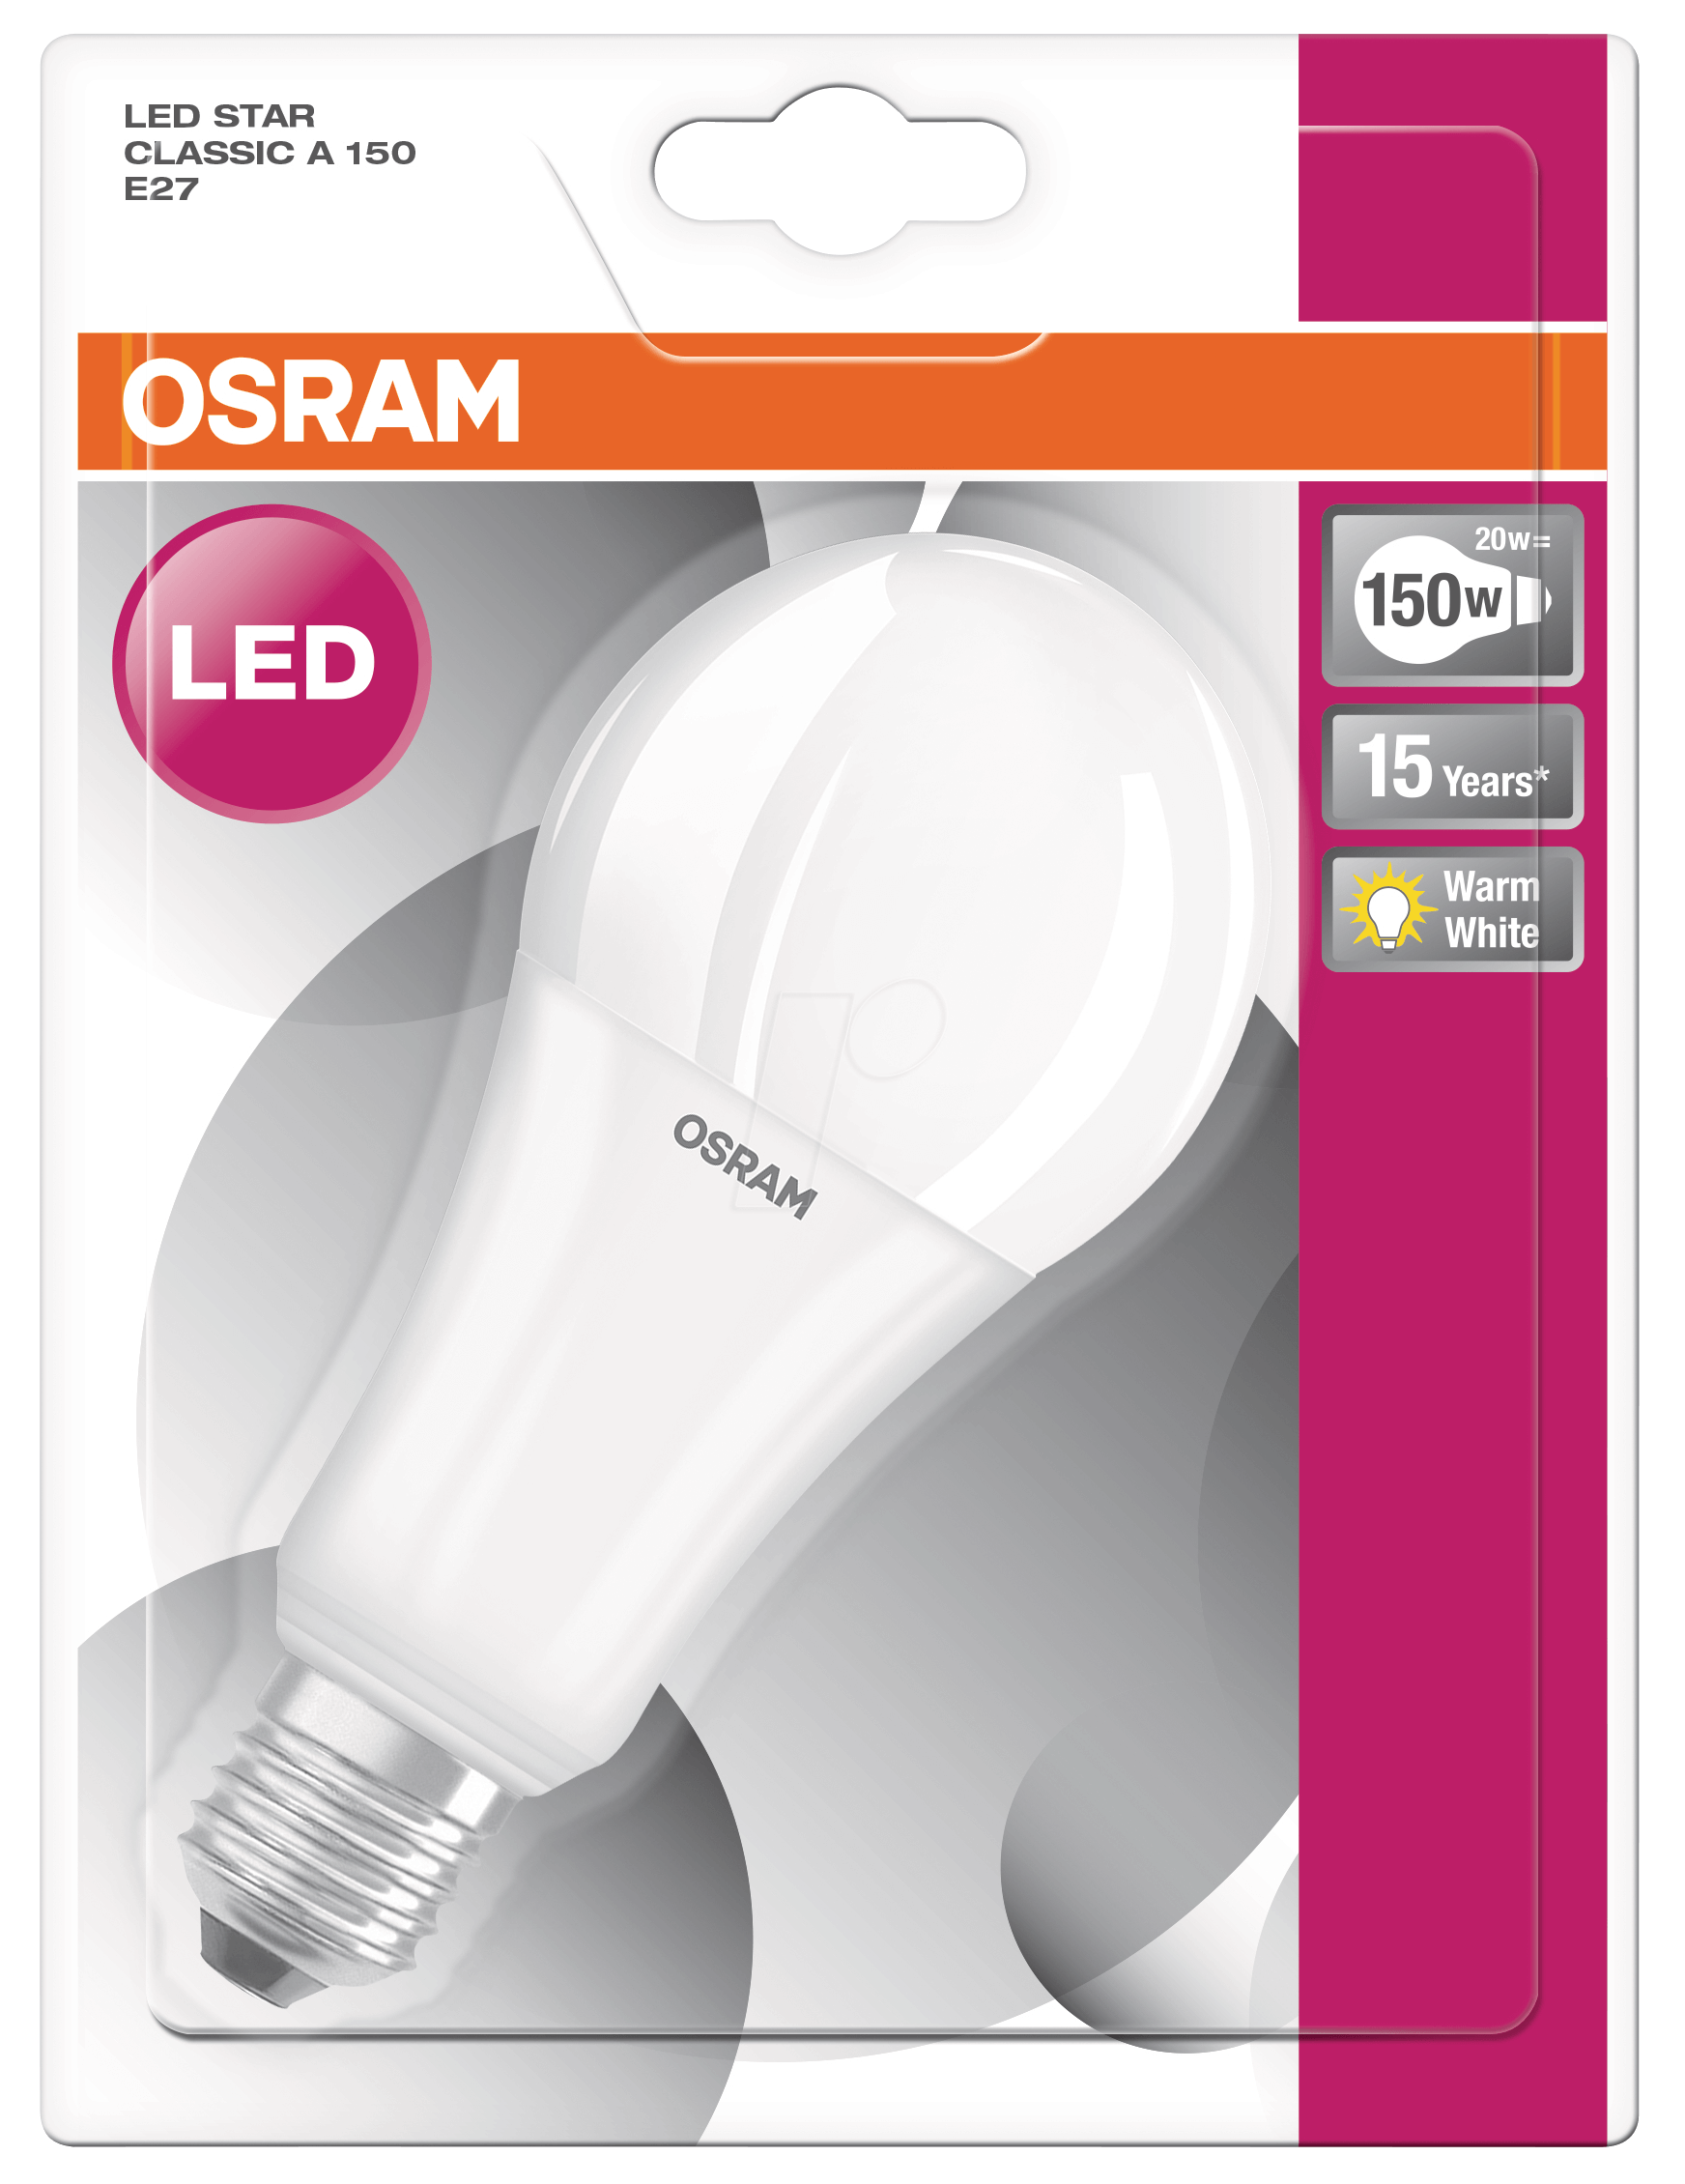 osr 899959118 osram led star cl a 150 20 w e27 at reichelt elektronik. Black Bedroom Furniture Sets. Home Design Ideas